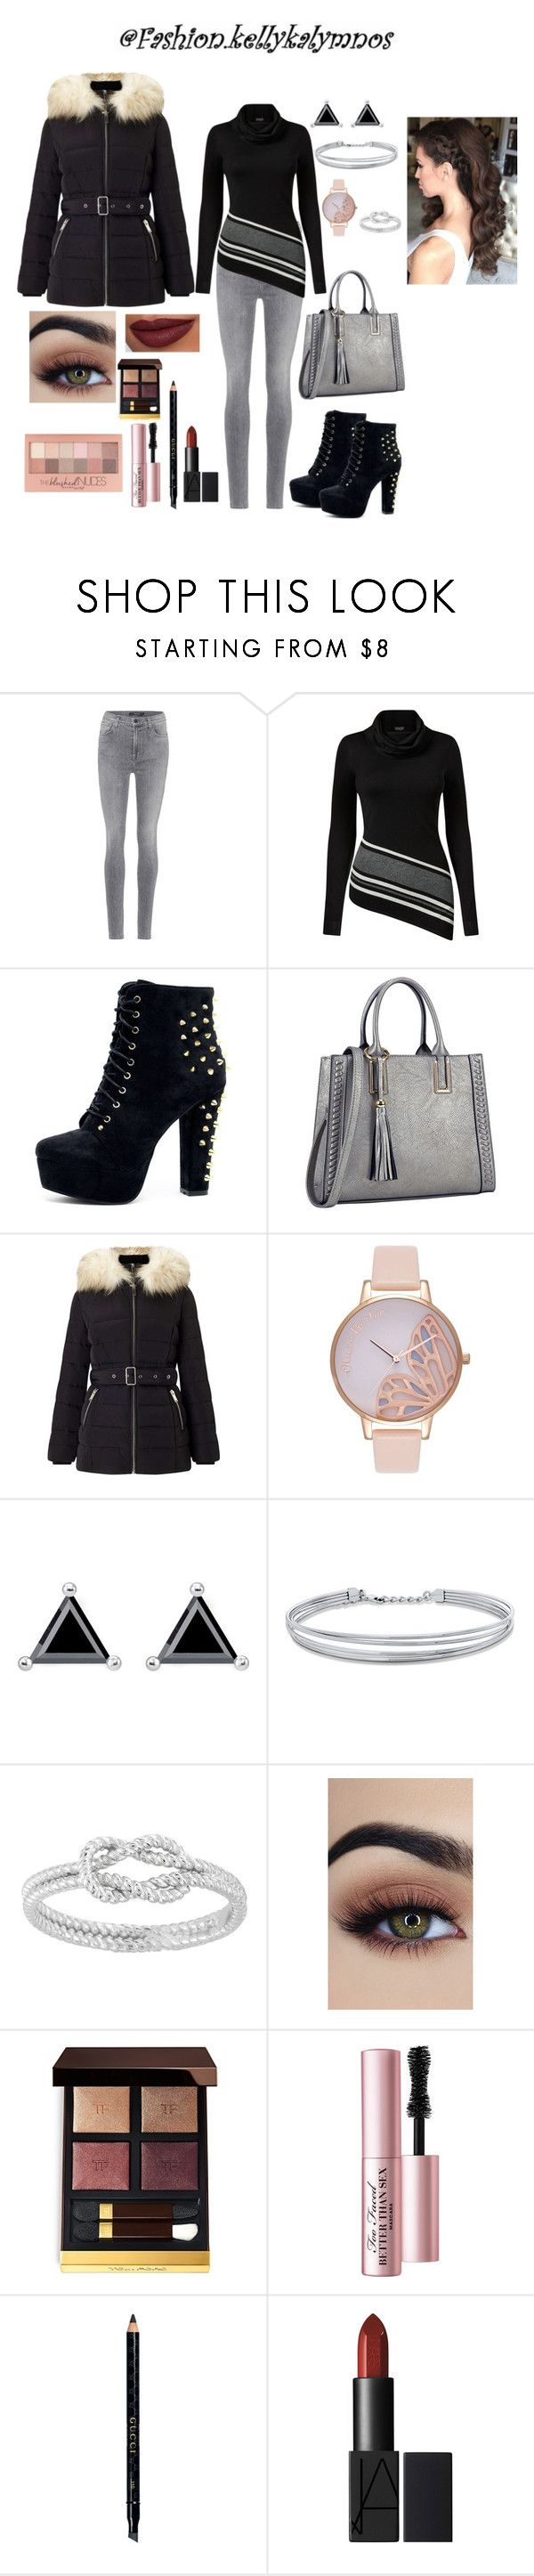 """""""Get ready with me: Coffee outlet"""" by kellykalymnoskd on Polyvore featuring J Brand, Venus, Dasein, Miss Selfridge, Olivia Burton, Thomas Sabo, BERRICLE, Maybelline, Tom Ford and Too Faced Cosmetics"""